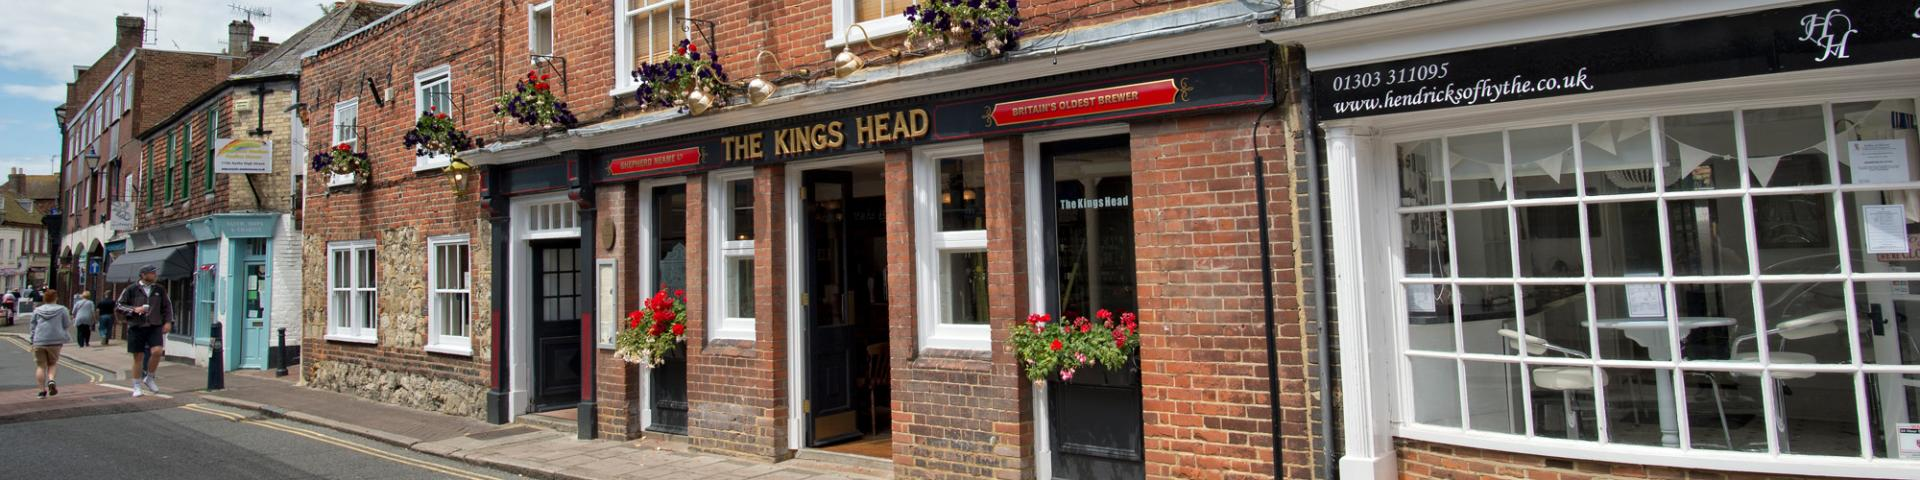 Kings Head, Hythe